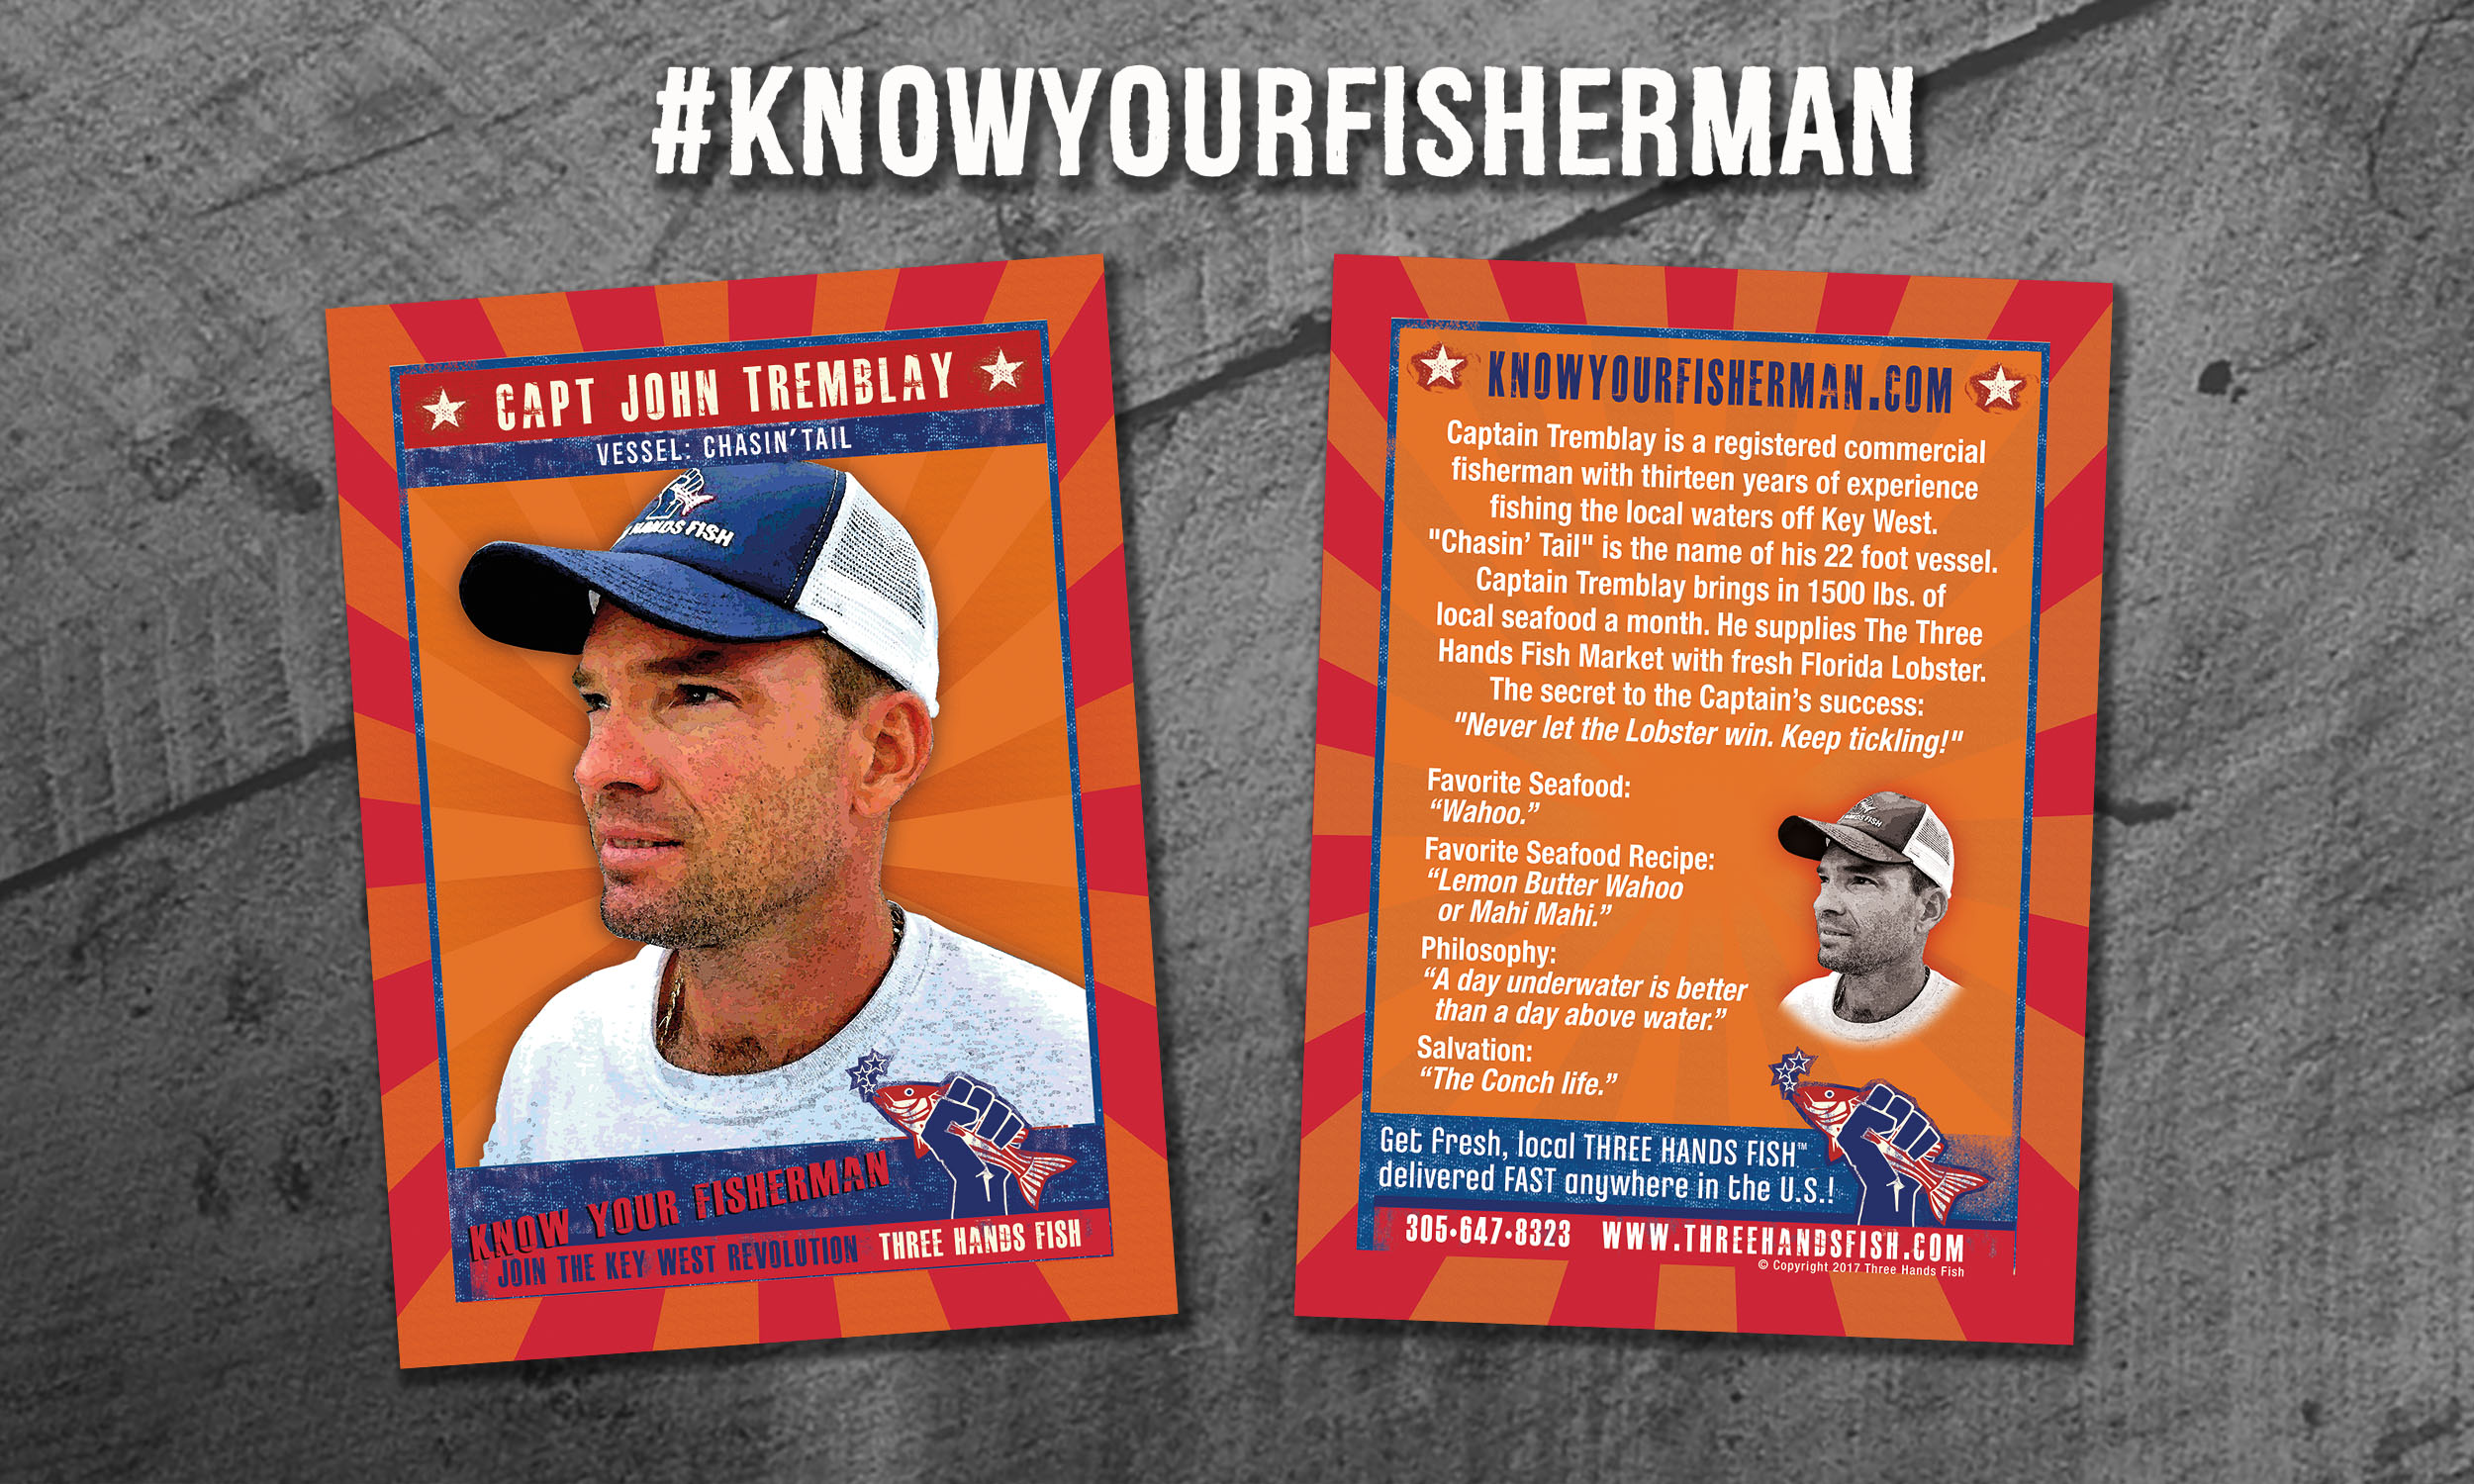 KnowYourFisherman_J.Tremblay.jpg